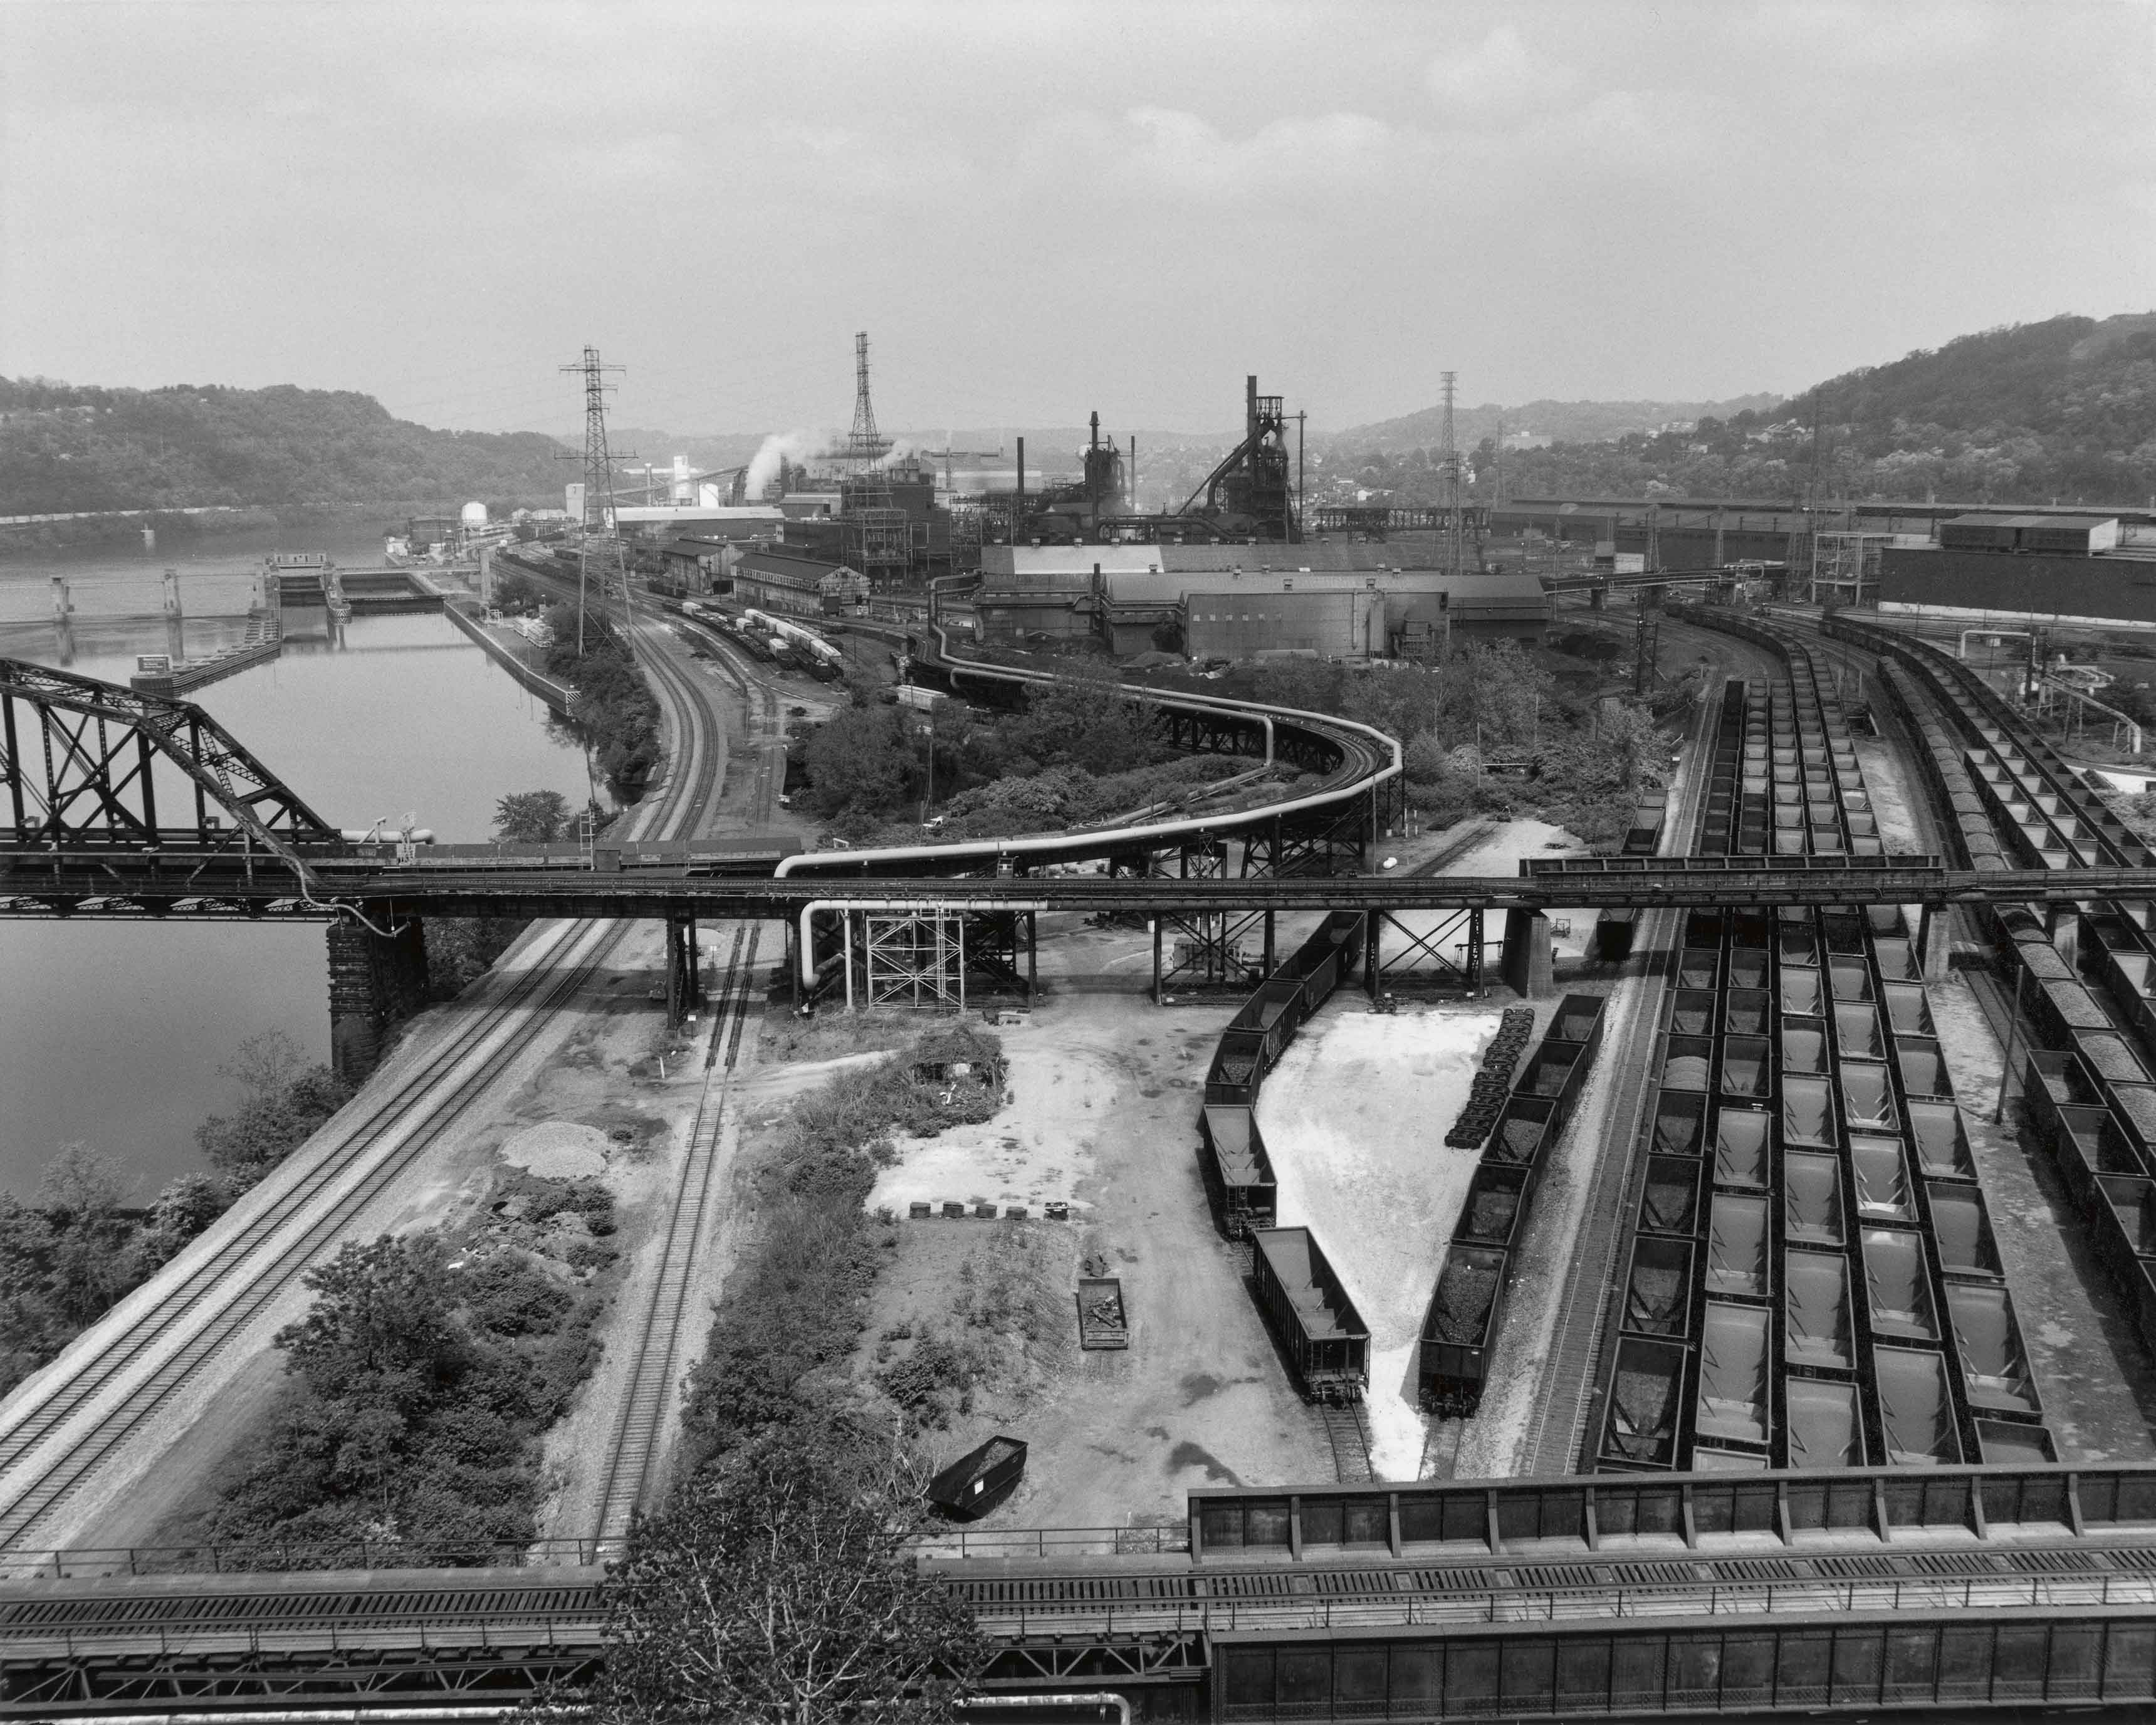 U.S.S Edgar Thompson Steel Works & MononGahela River (2013). Tirage Gélatino-Argentique, 12,9 x 152,4 cm. LaToya Ruby Frazier.